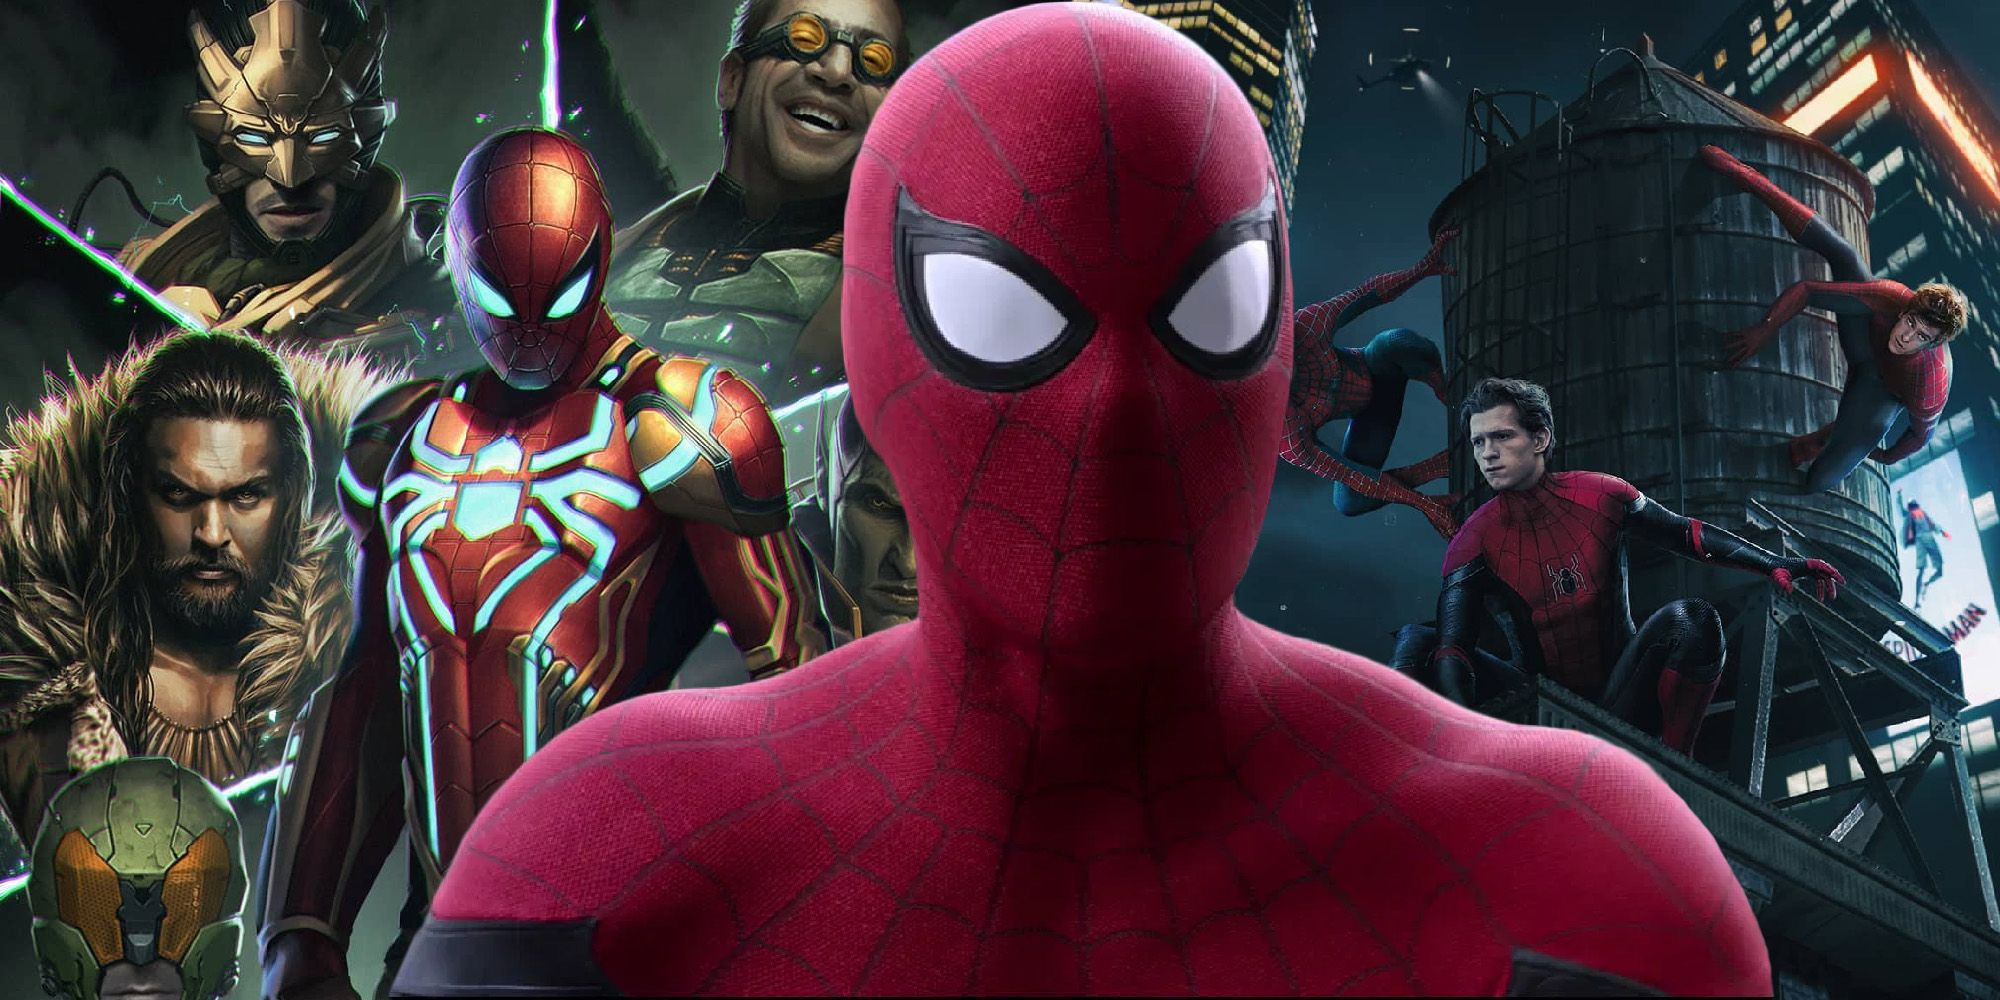 MCU Theory: Spider-Man 3 Is A Sinister Six Movie (Not Spider-Verse)